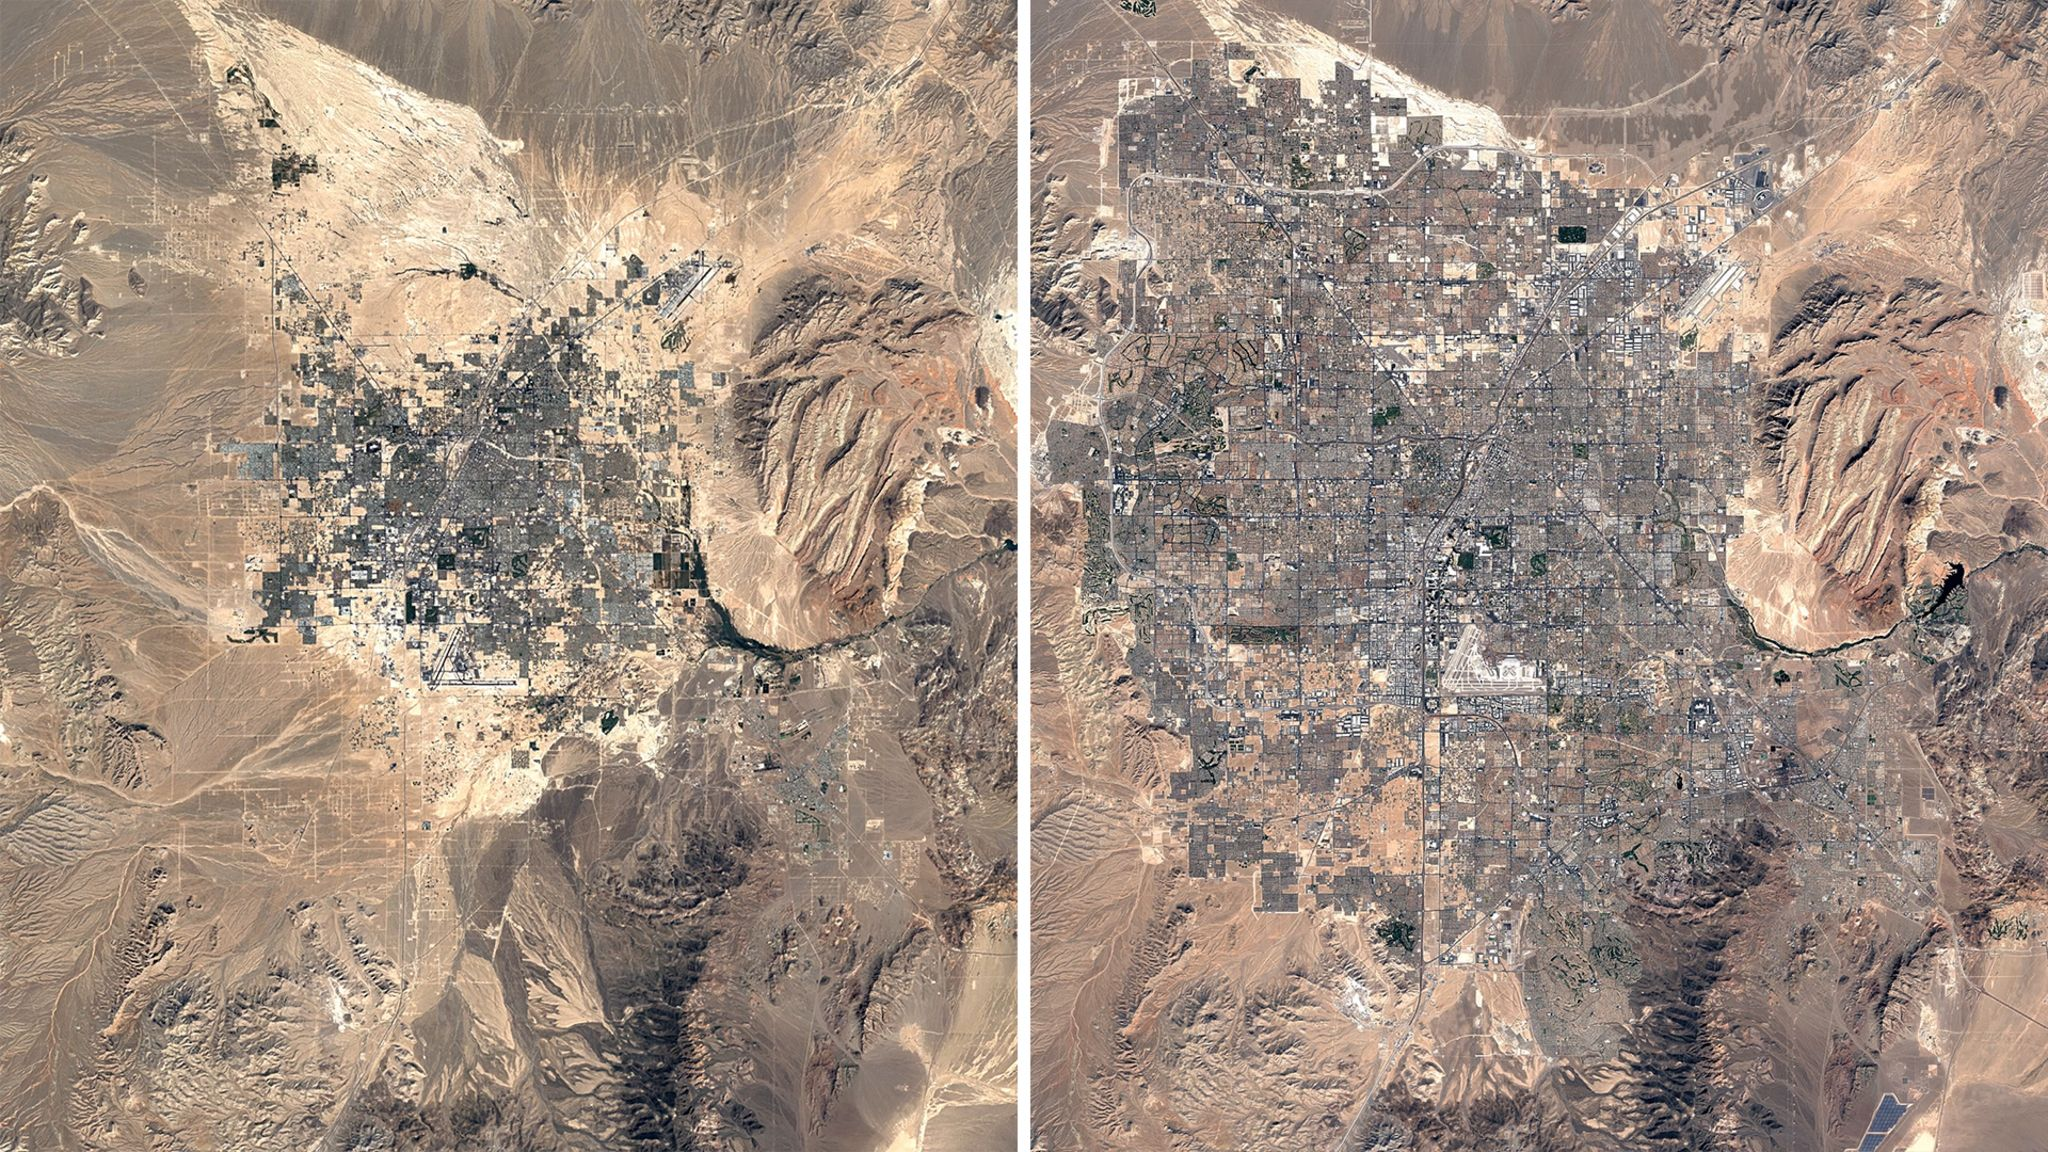 Two versions of Las Vegas side-by-side - one from 1984, one from 2020 - the latter has approximately doubled in size